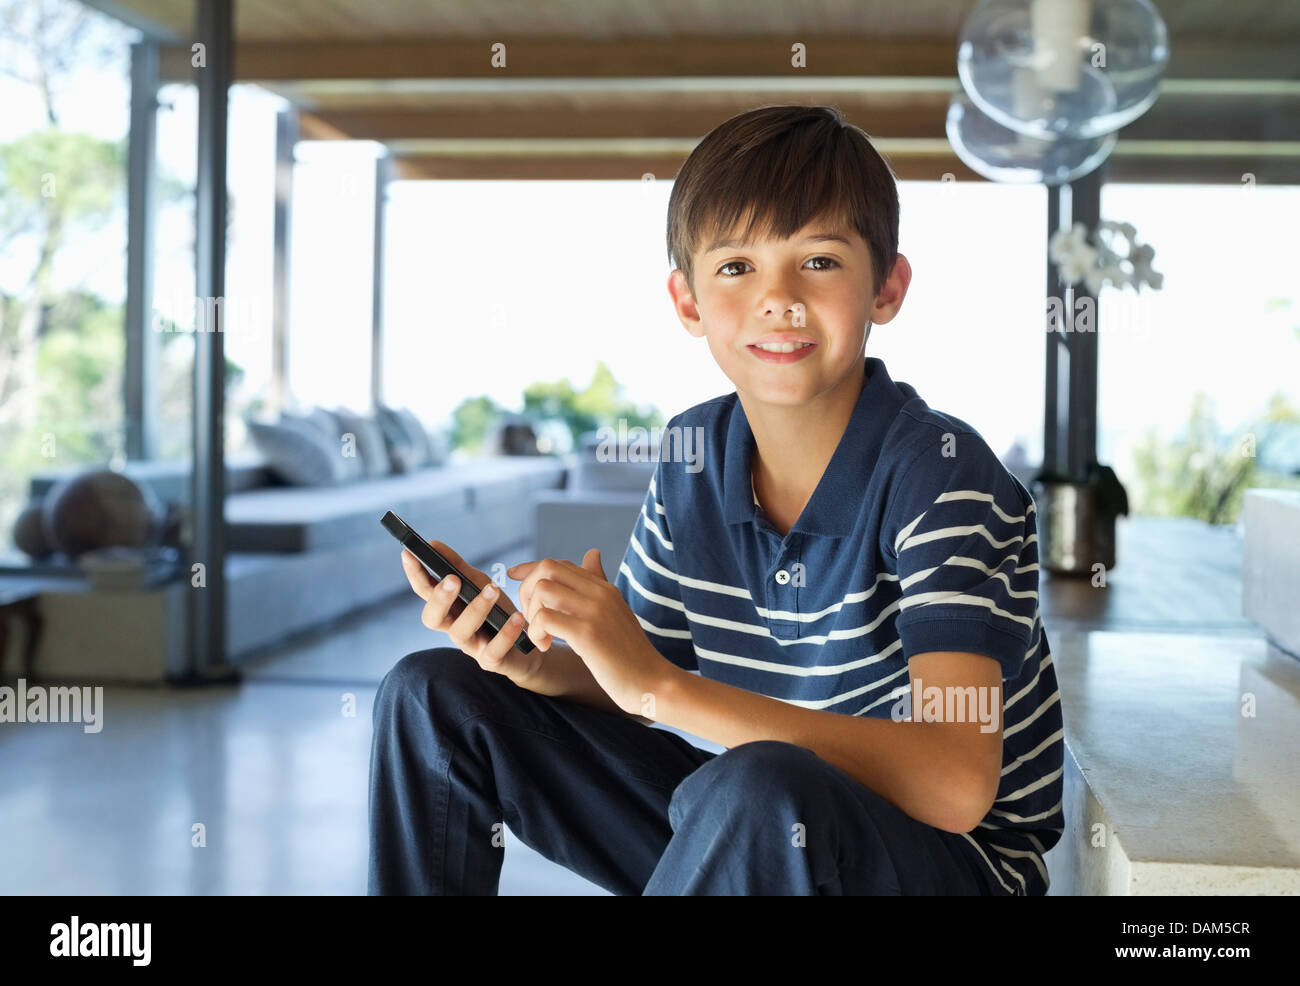 Boy using cell phone on steps - Stock Image